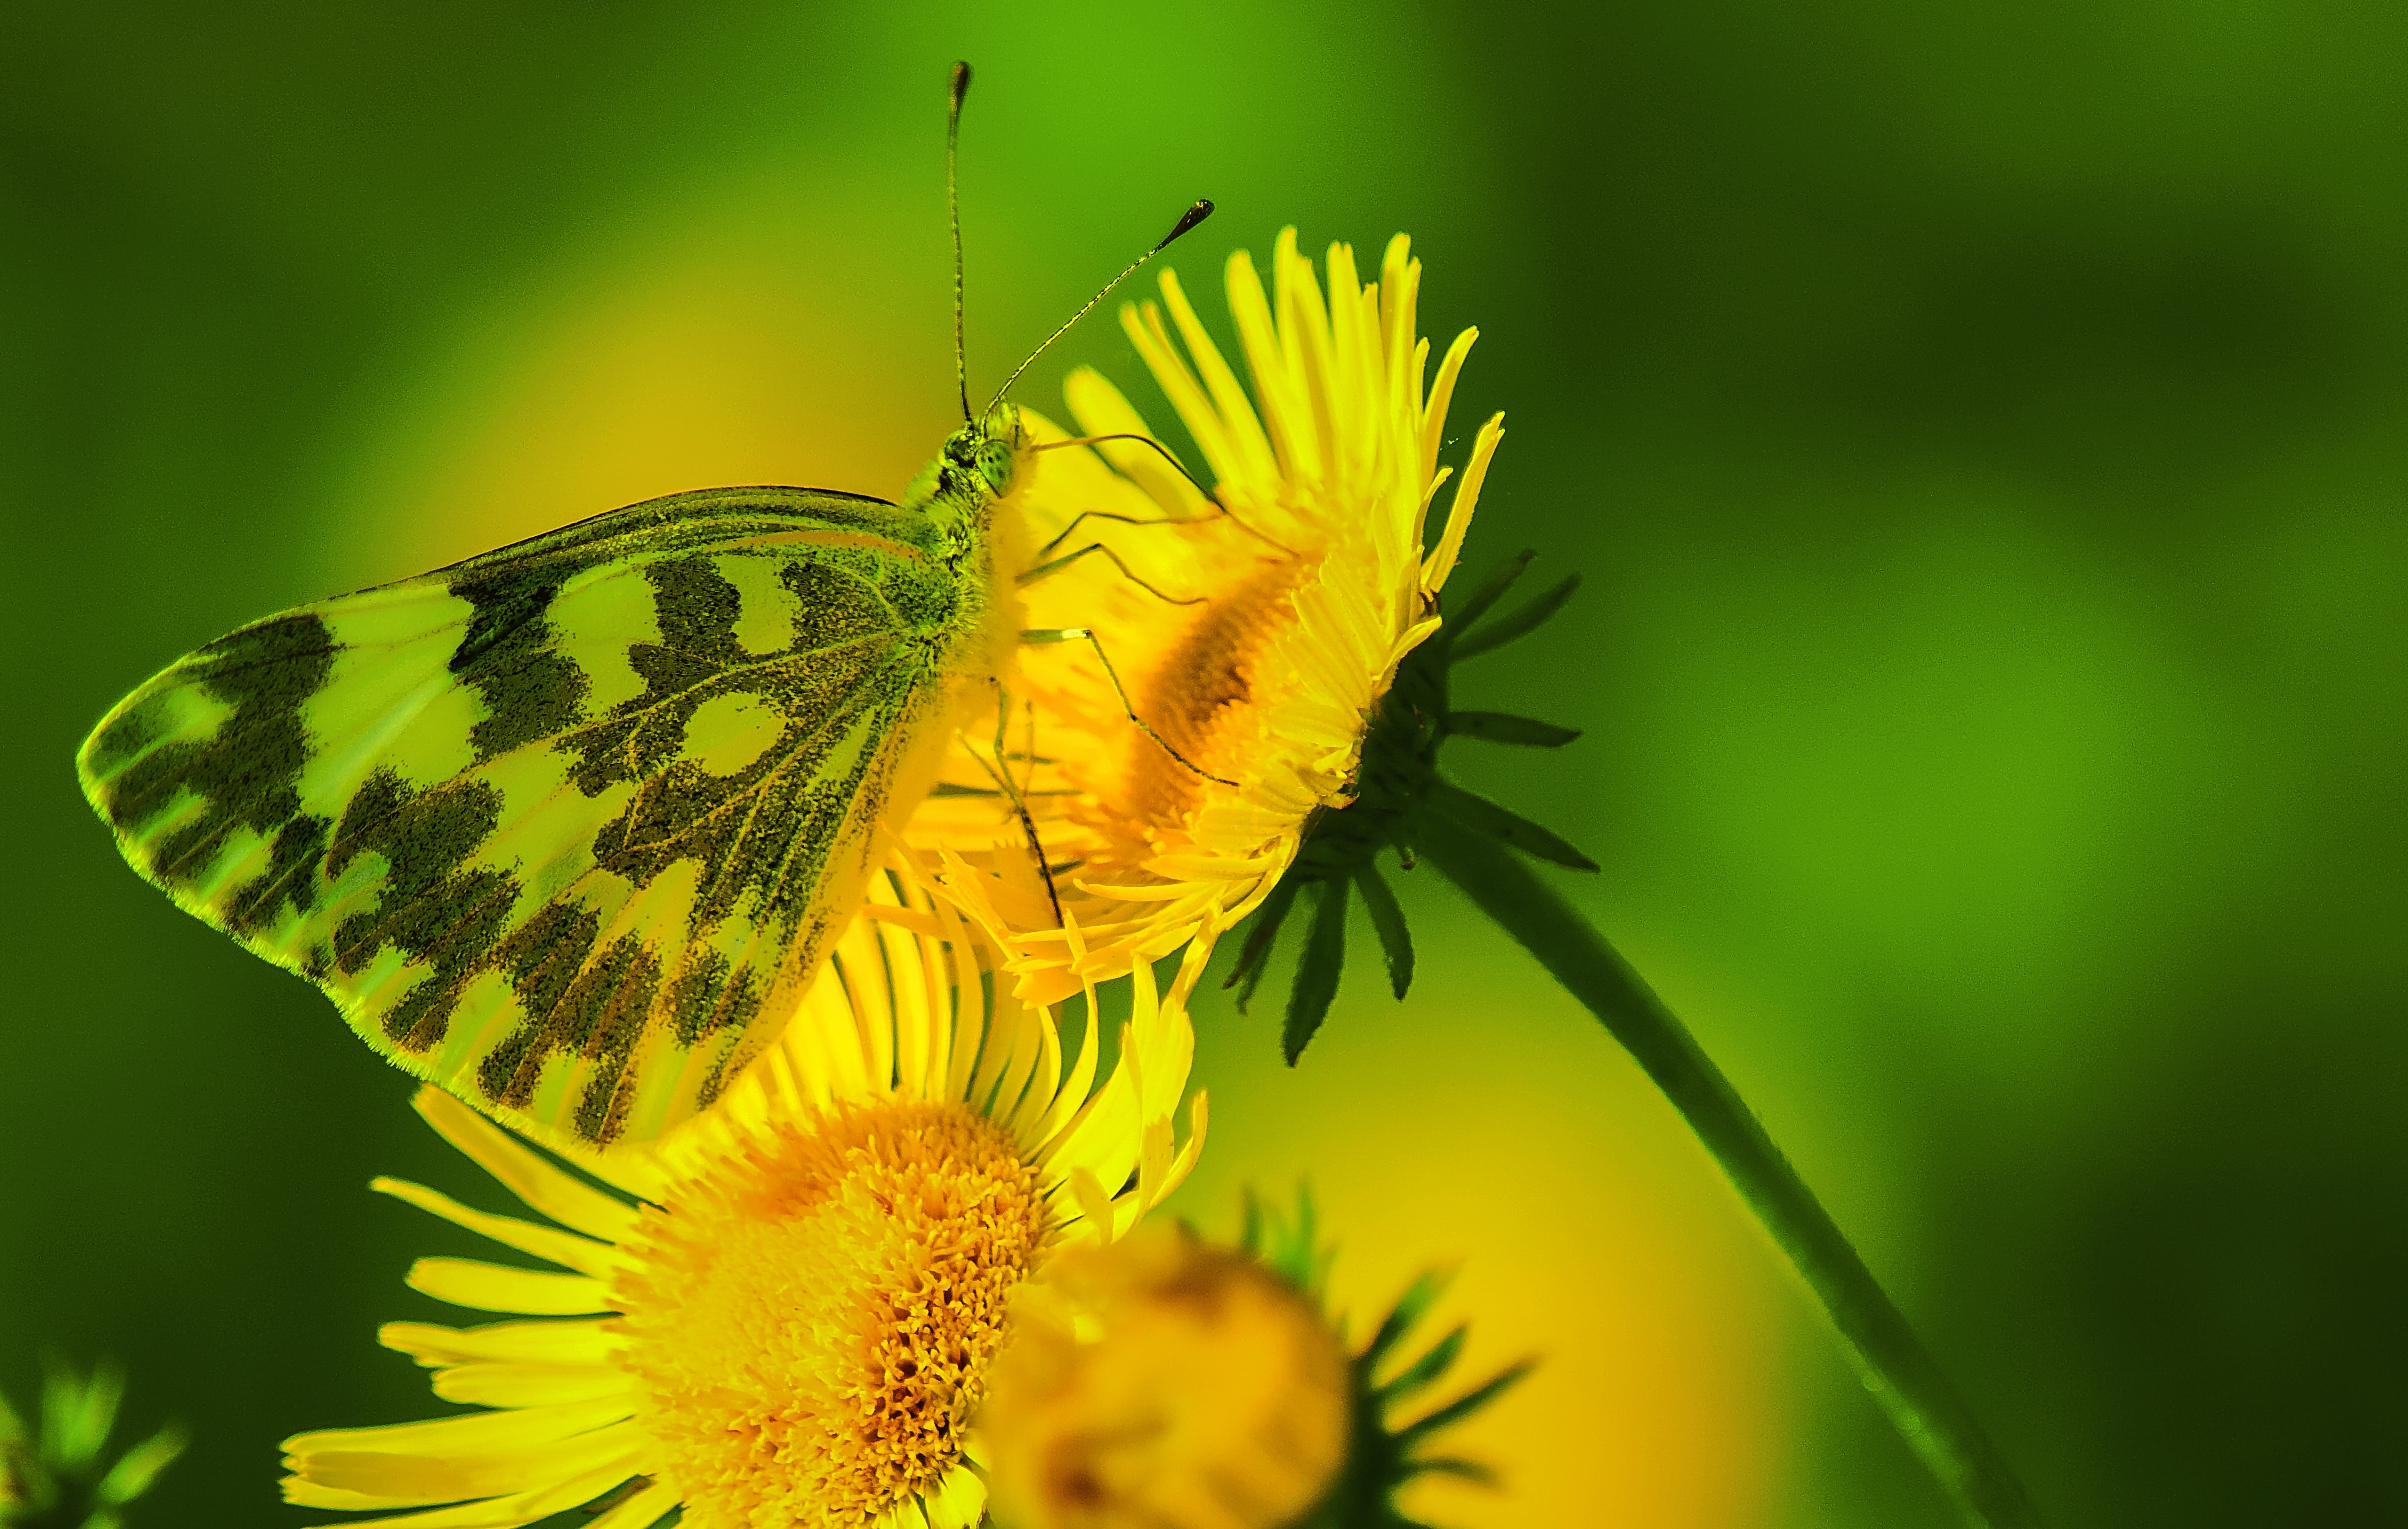 close-up photography of butterfly on yellow petaled flower